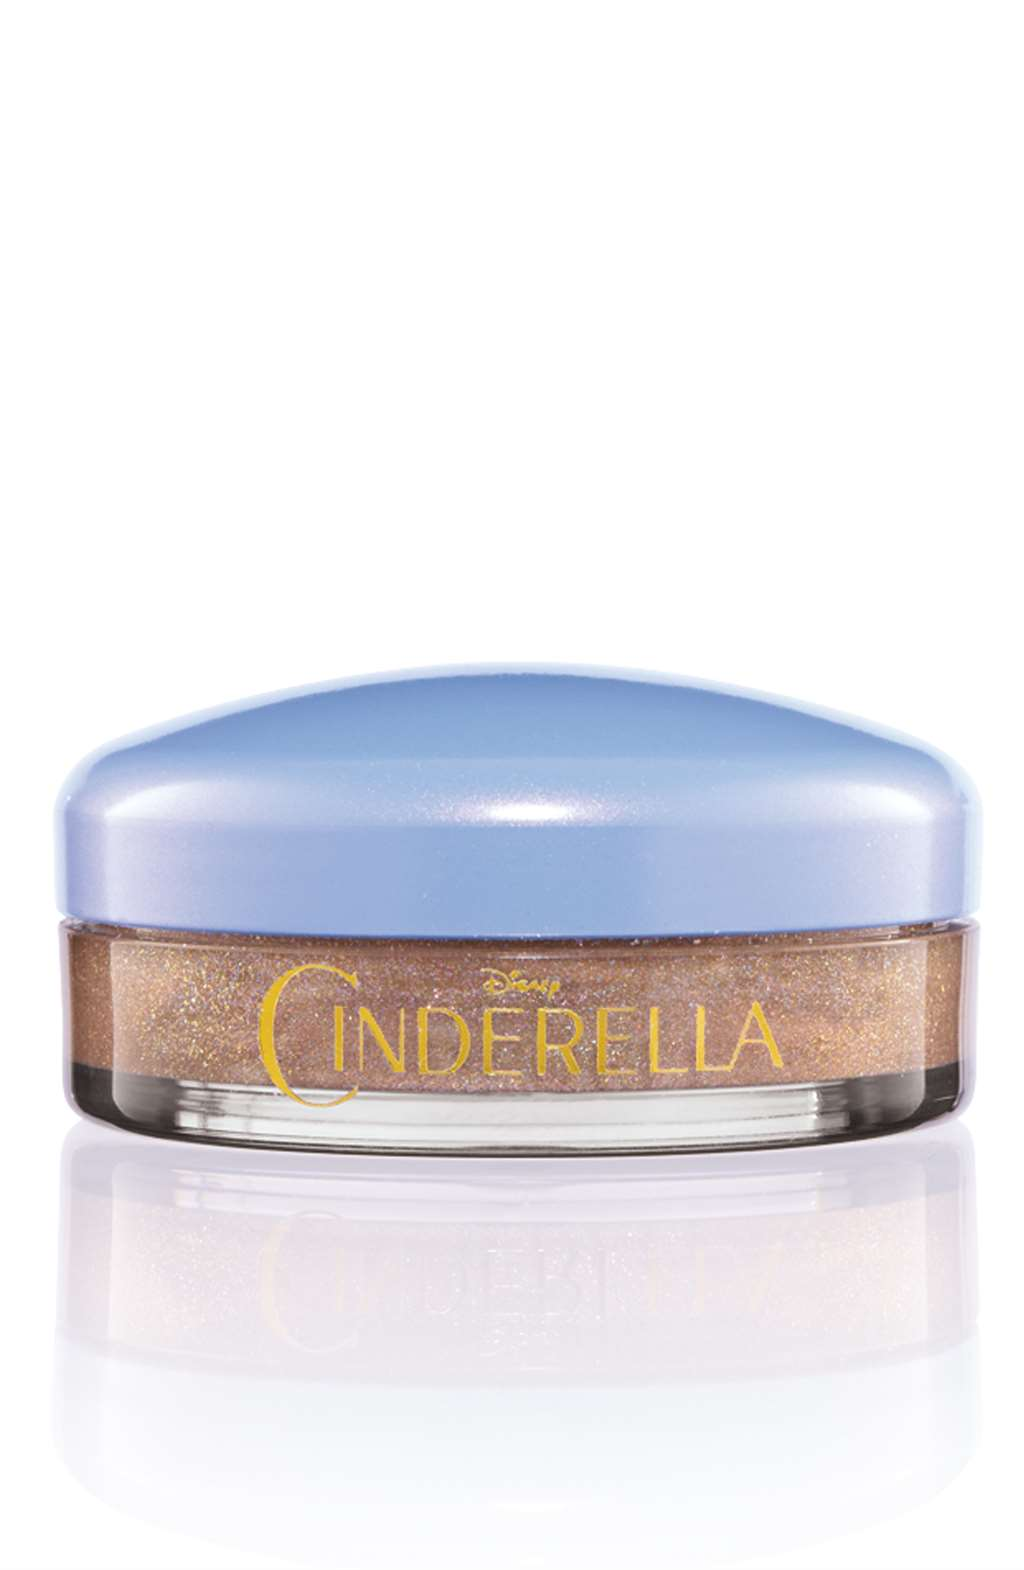 CINDERELLA_M.A.C STUDIO EYE GLOSS_LIGHTLY TAUPED_300